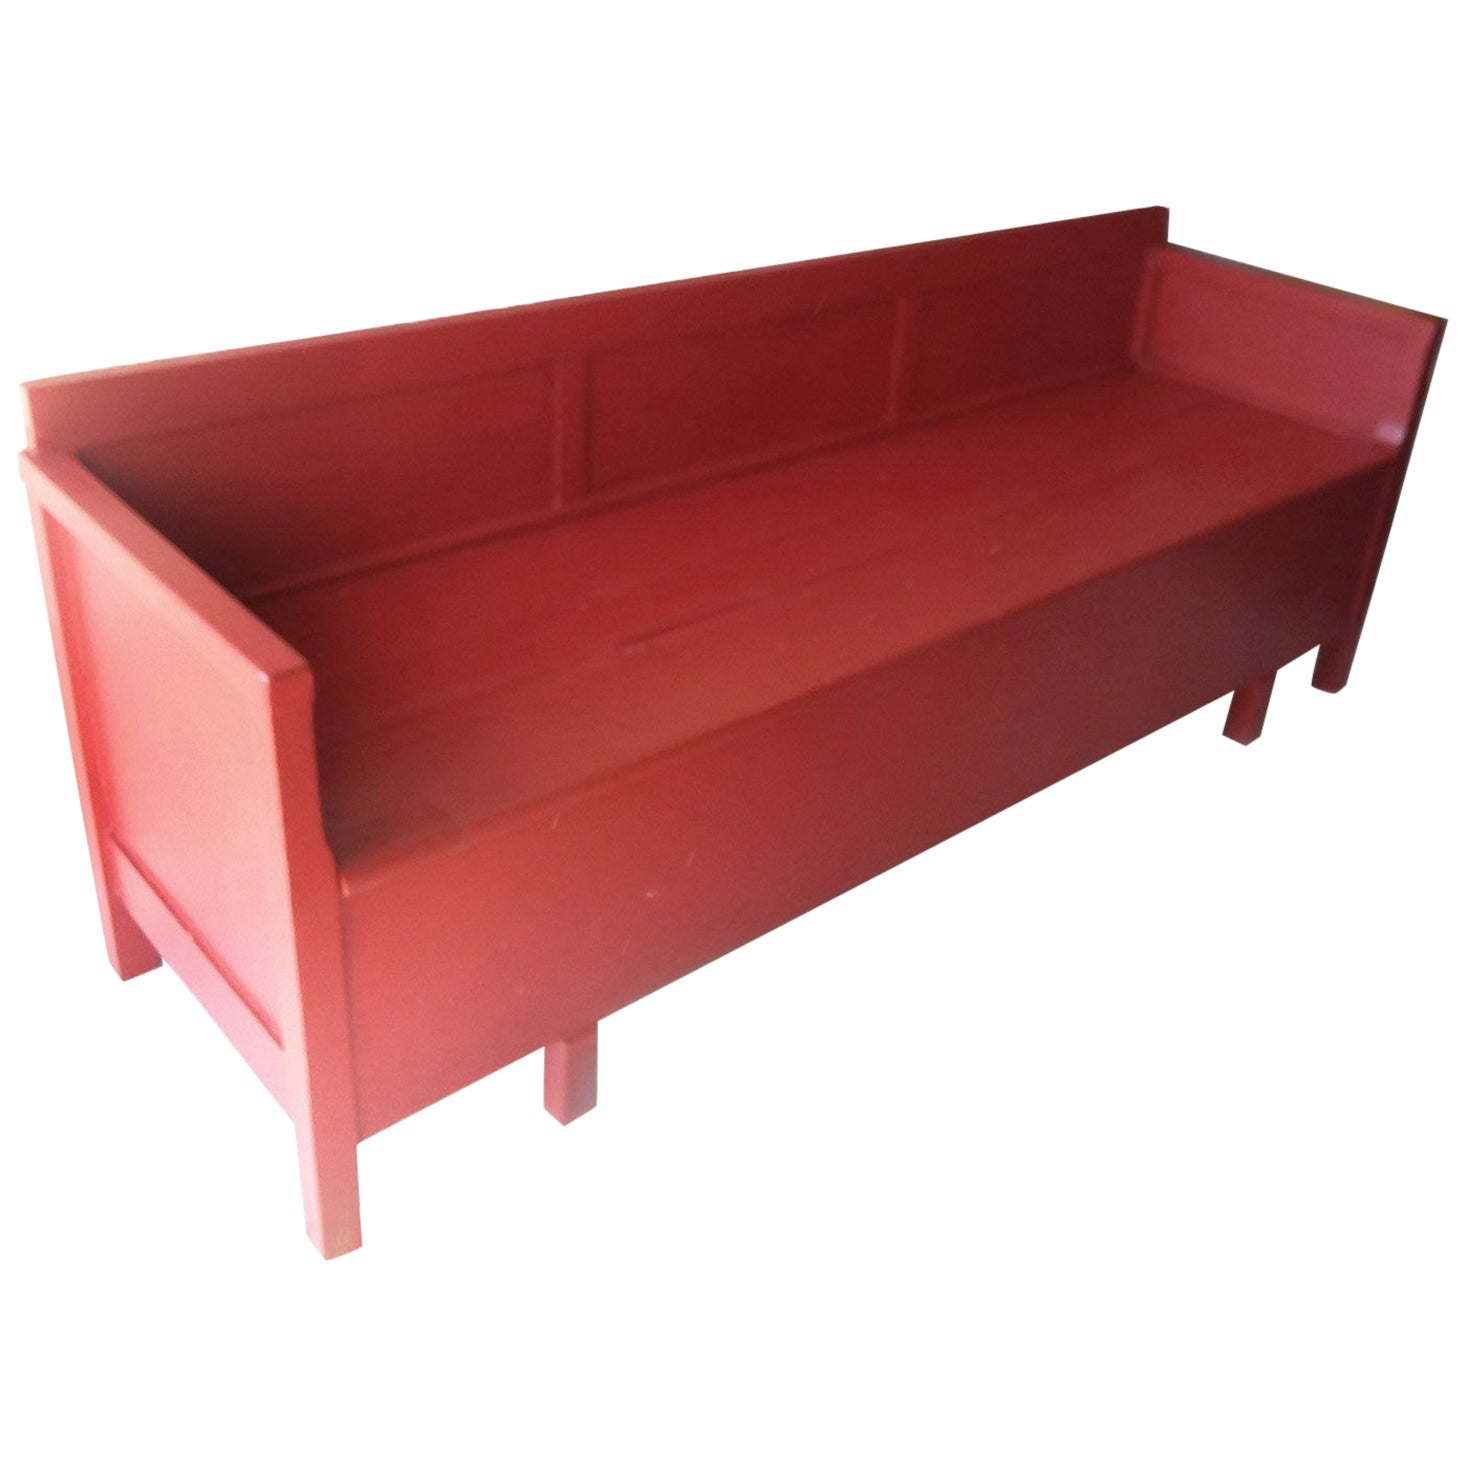 Antique Painted Red Swedish Daybed/Bench/Child's Bed